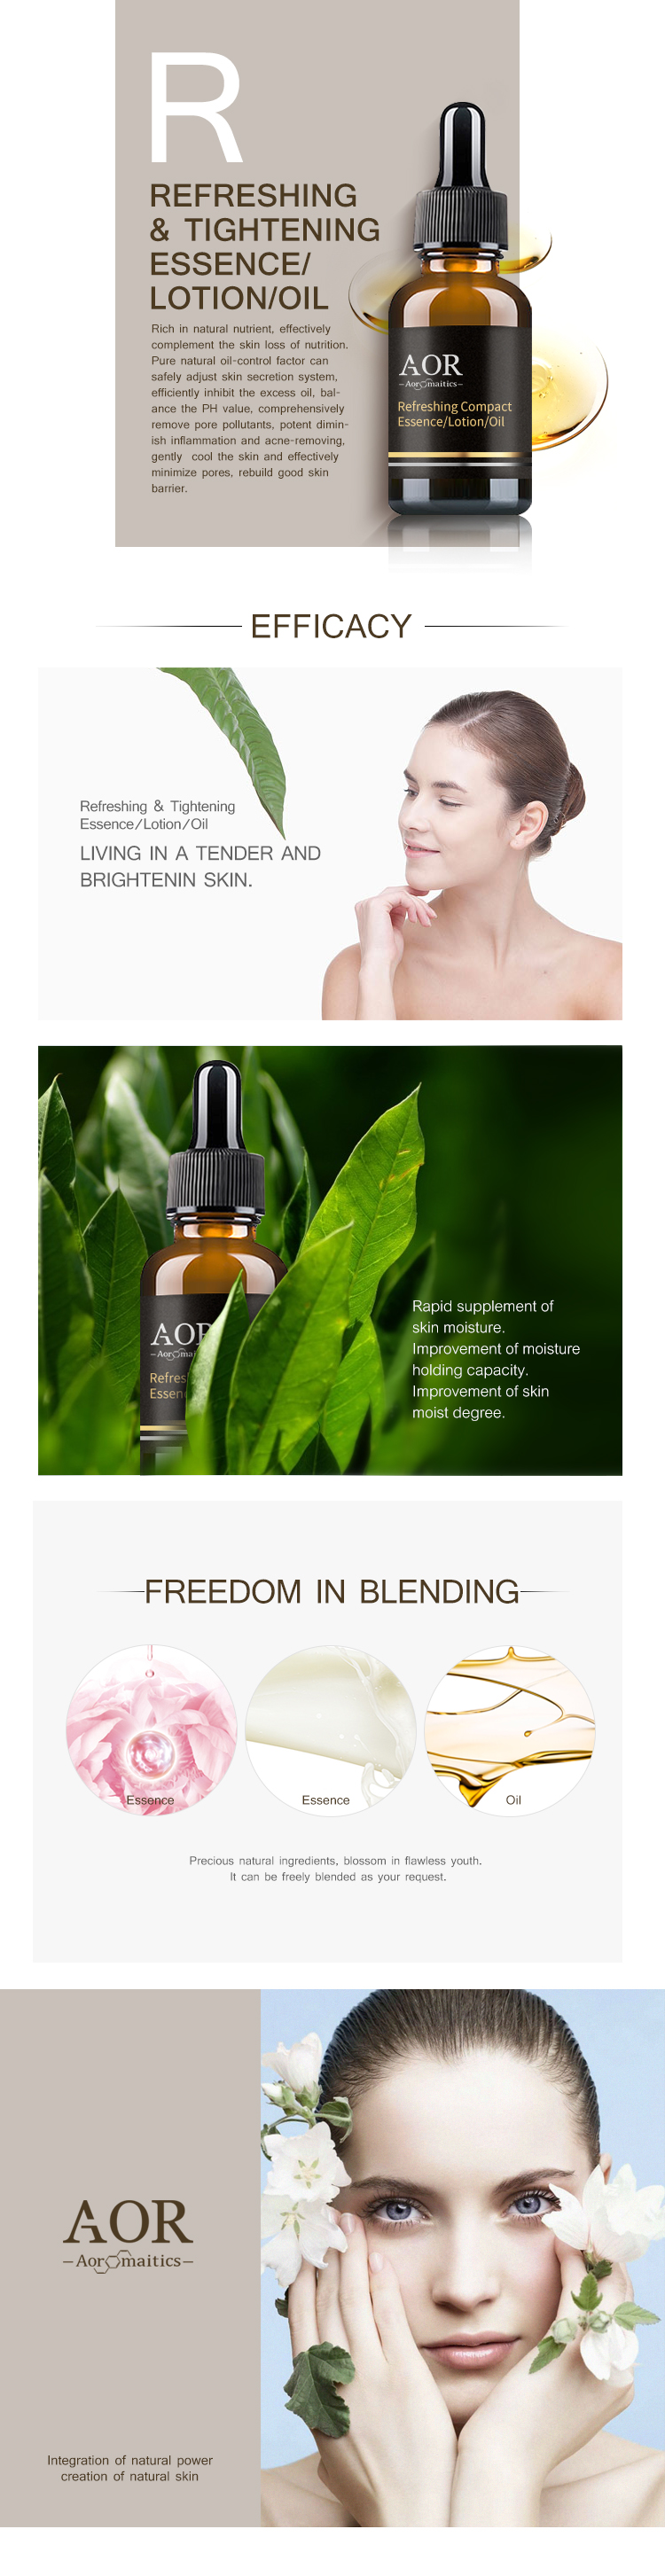 Refreshing Tightening Essence/Lotion/Oil Wholesale for Oil-control Anti-acne with OEM/ODM